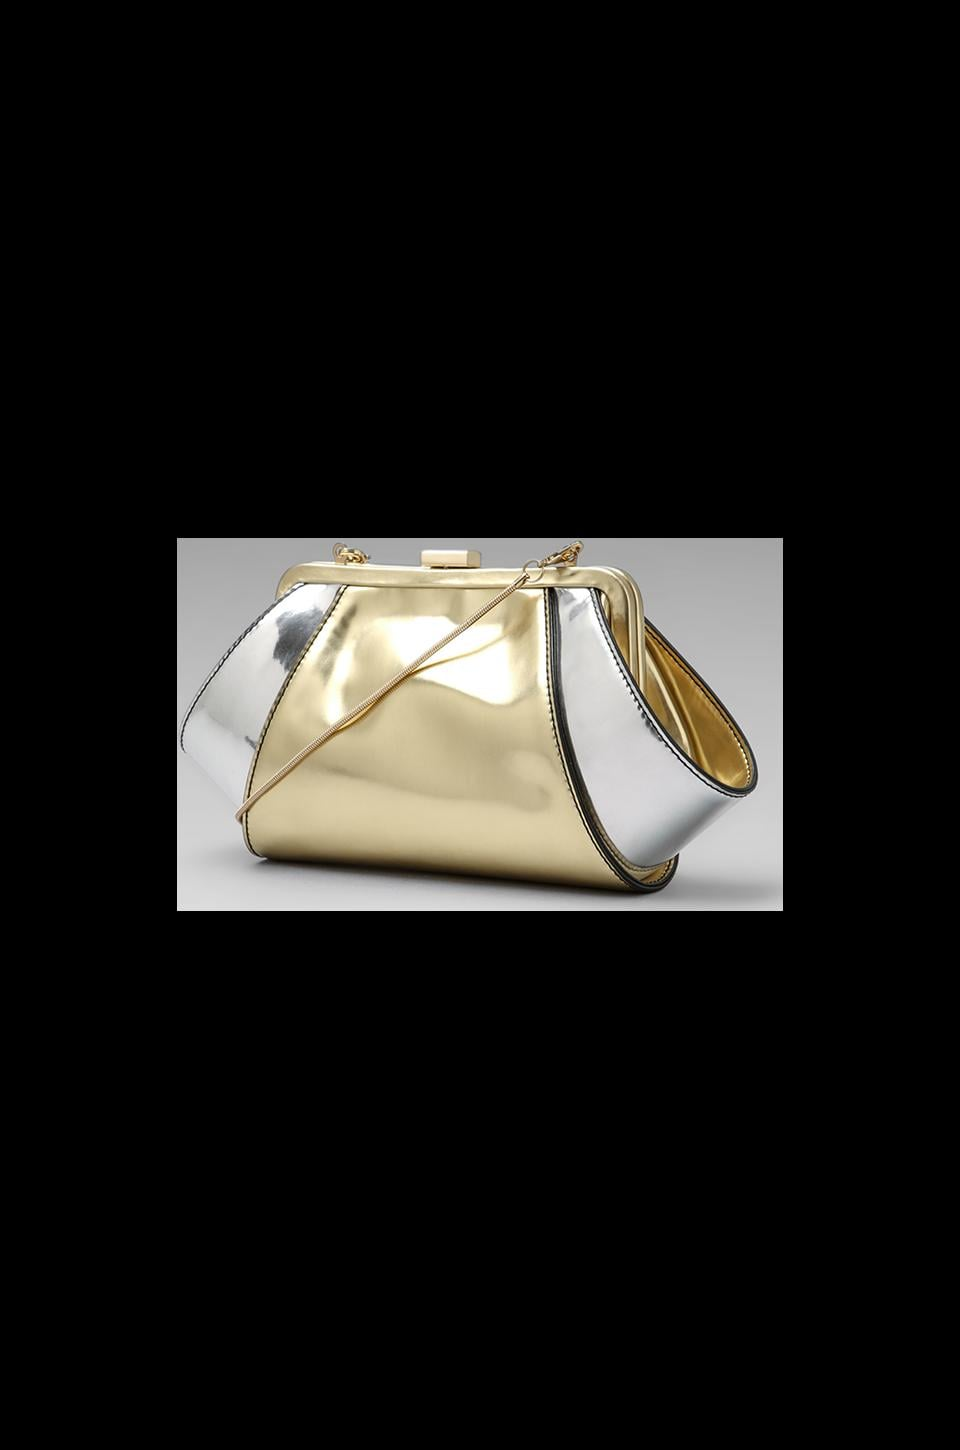 Z Spoke by Zac Posen Posen Clutch in Gold/Silver